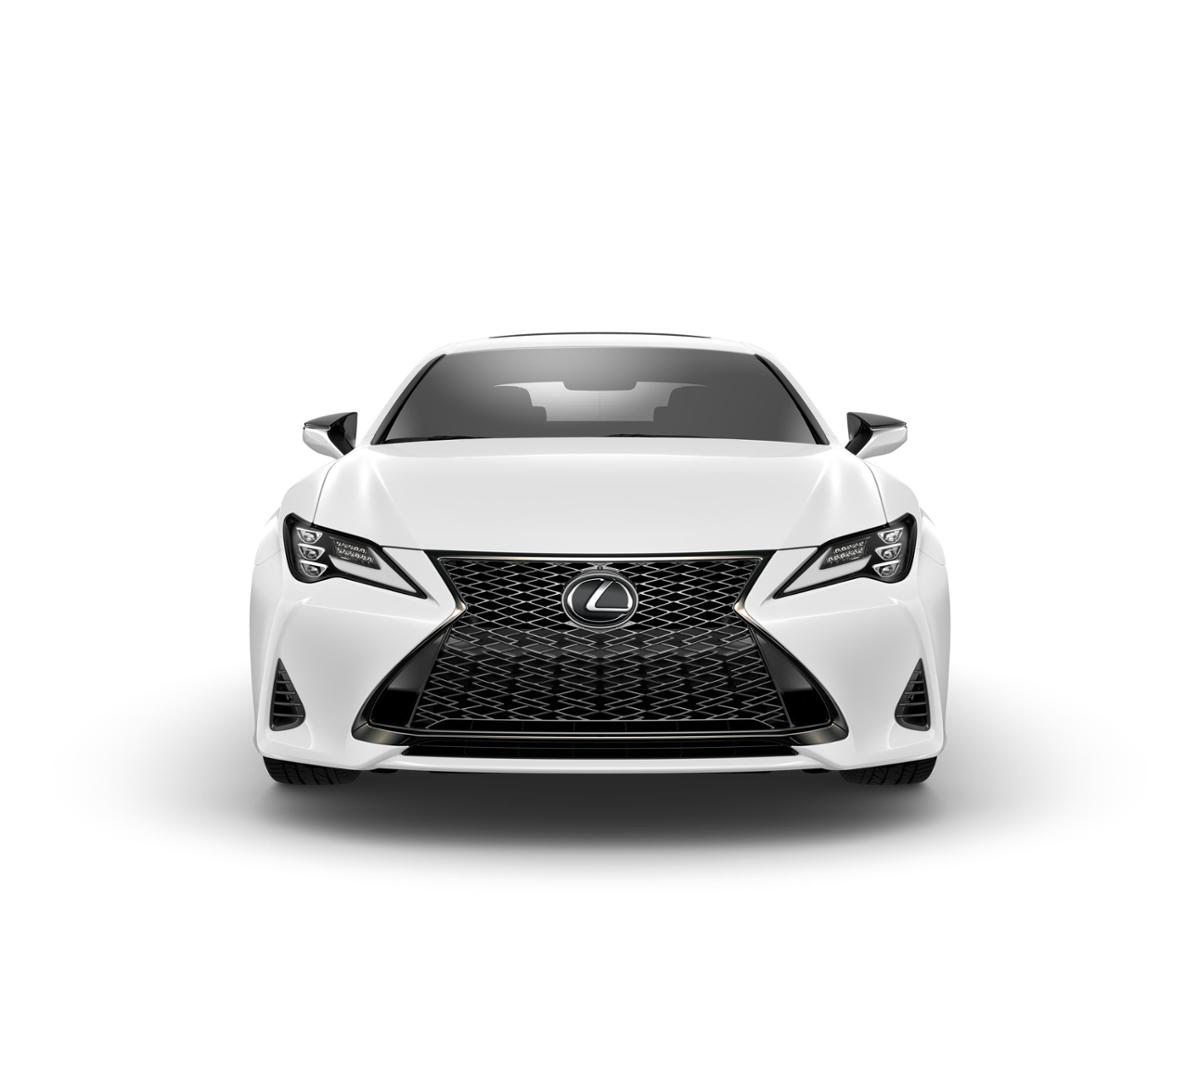 2019 Lexus RC 350 Vehicle Photo in Las Vegas, NV 89146